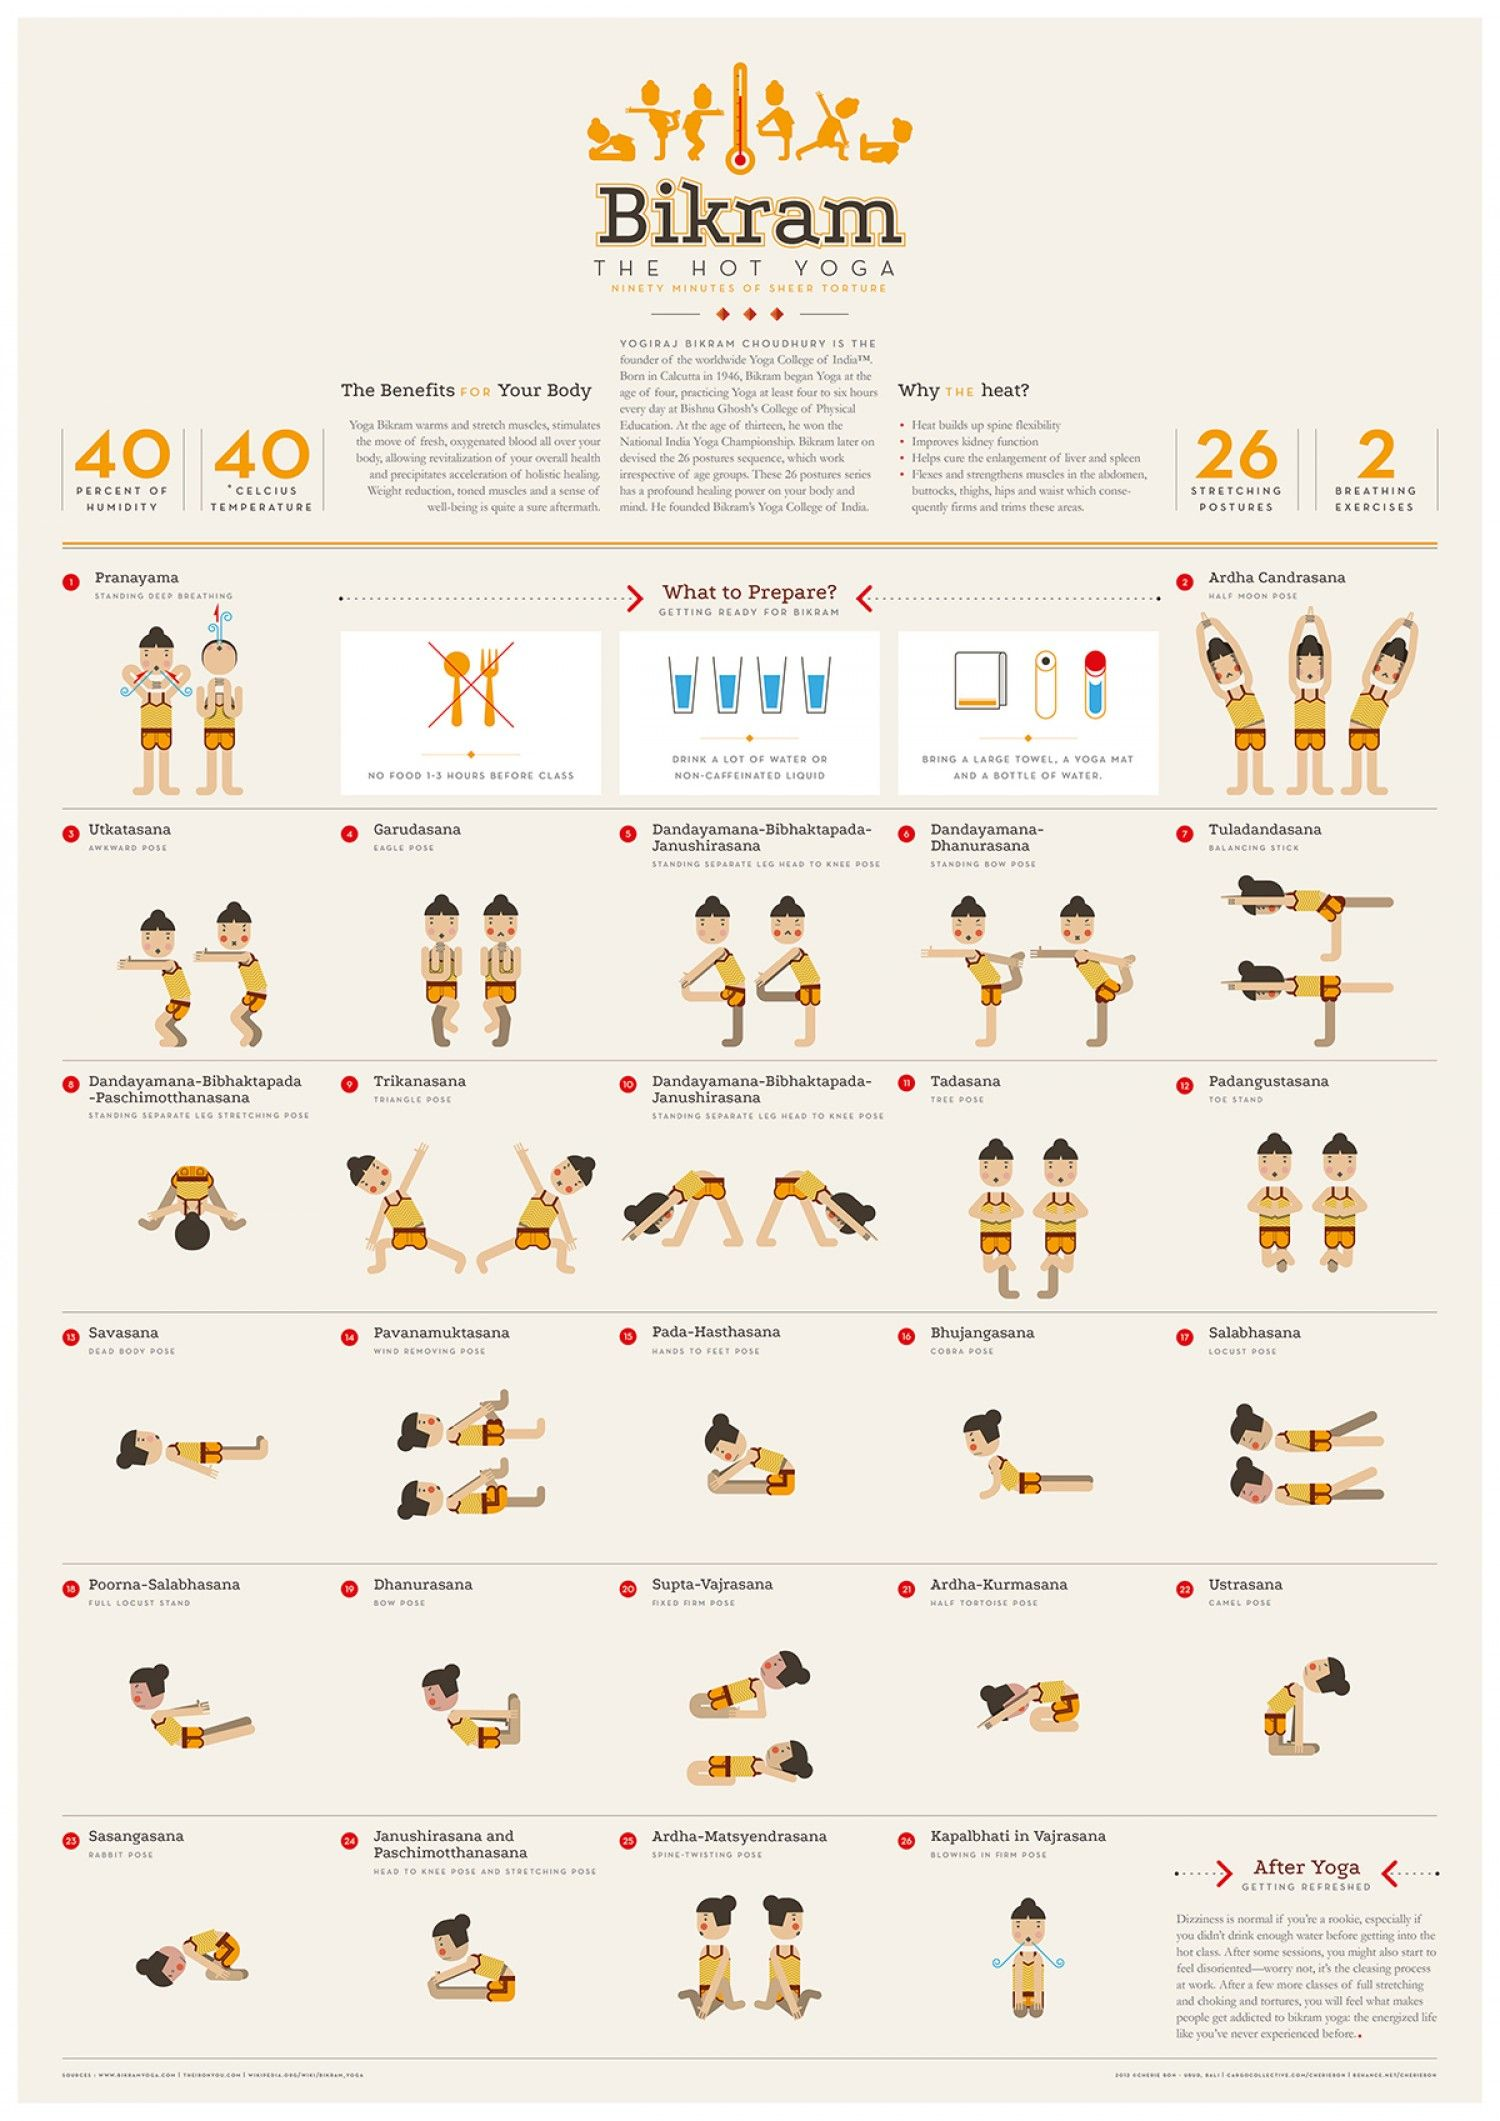 26 Hot Yoga Poses : poses, Infographic:, Essential, Guide, Bikram, Infographic,, Poses,, Poses